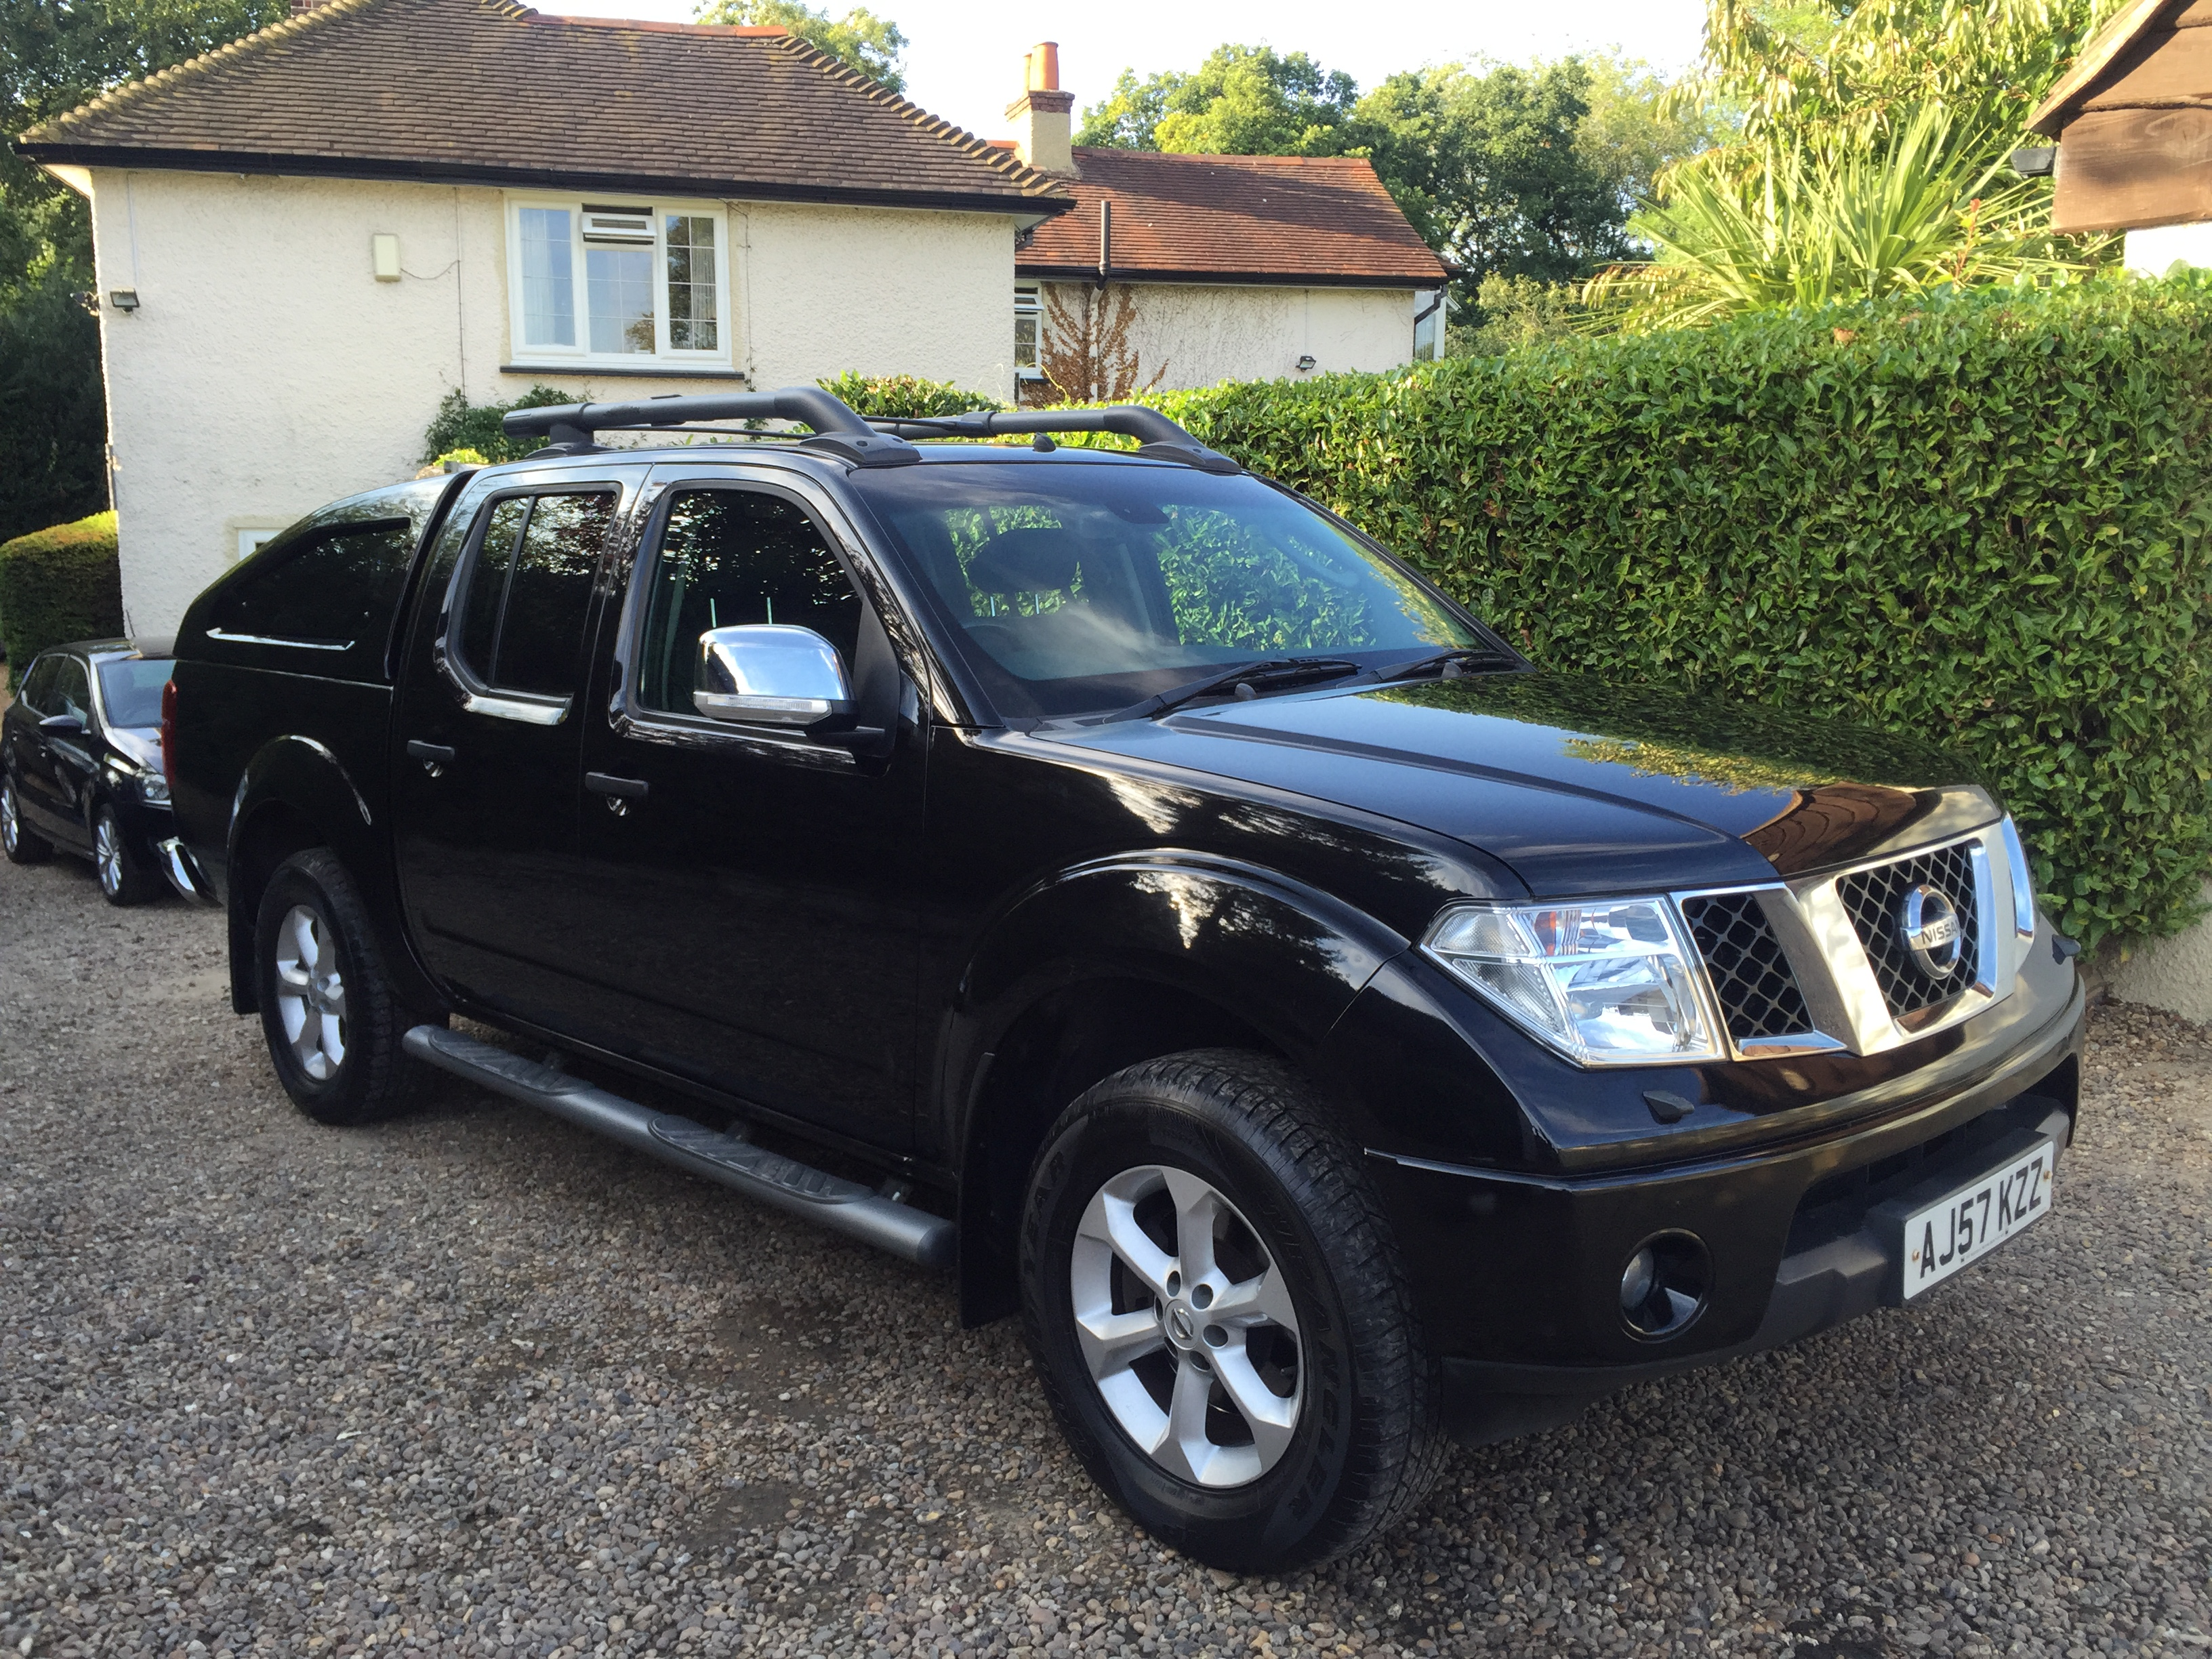 nissan navara aventura double cab pick up 2 5 diesel gs vehicle servcies. Black Bedroom Furniture Sets. Home Design Ideas